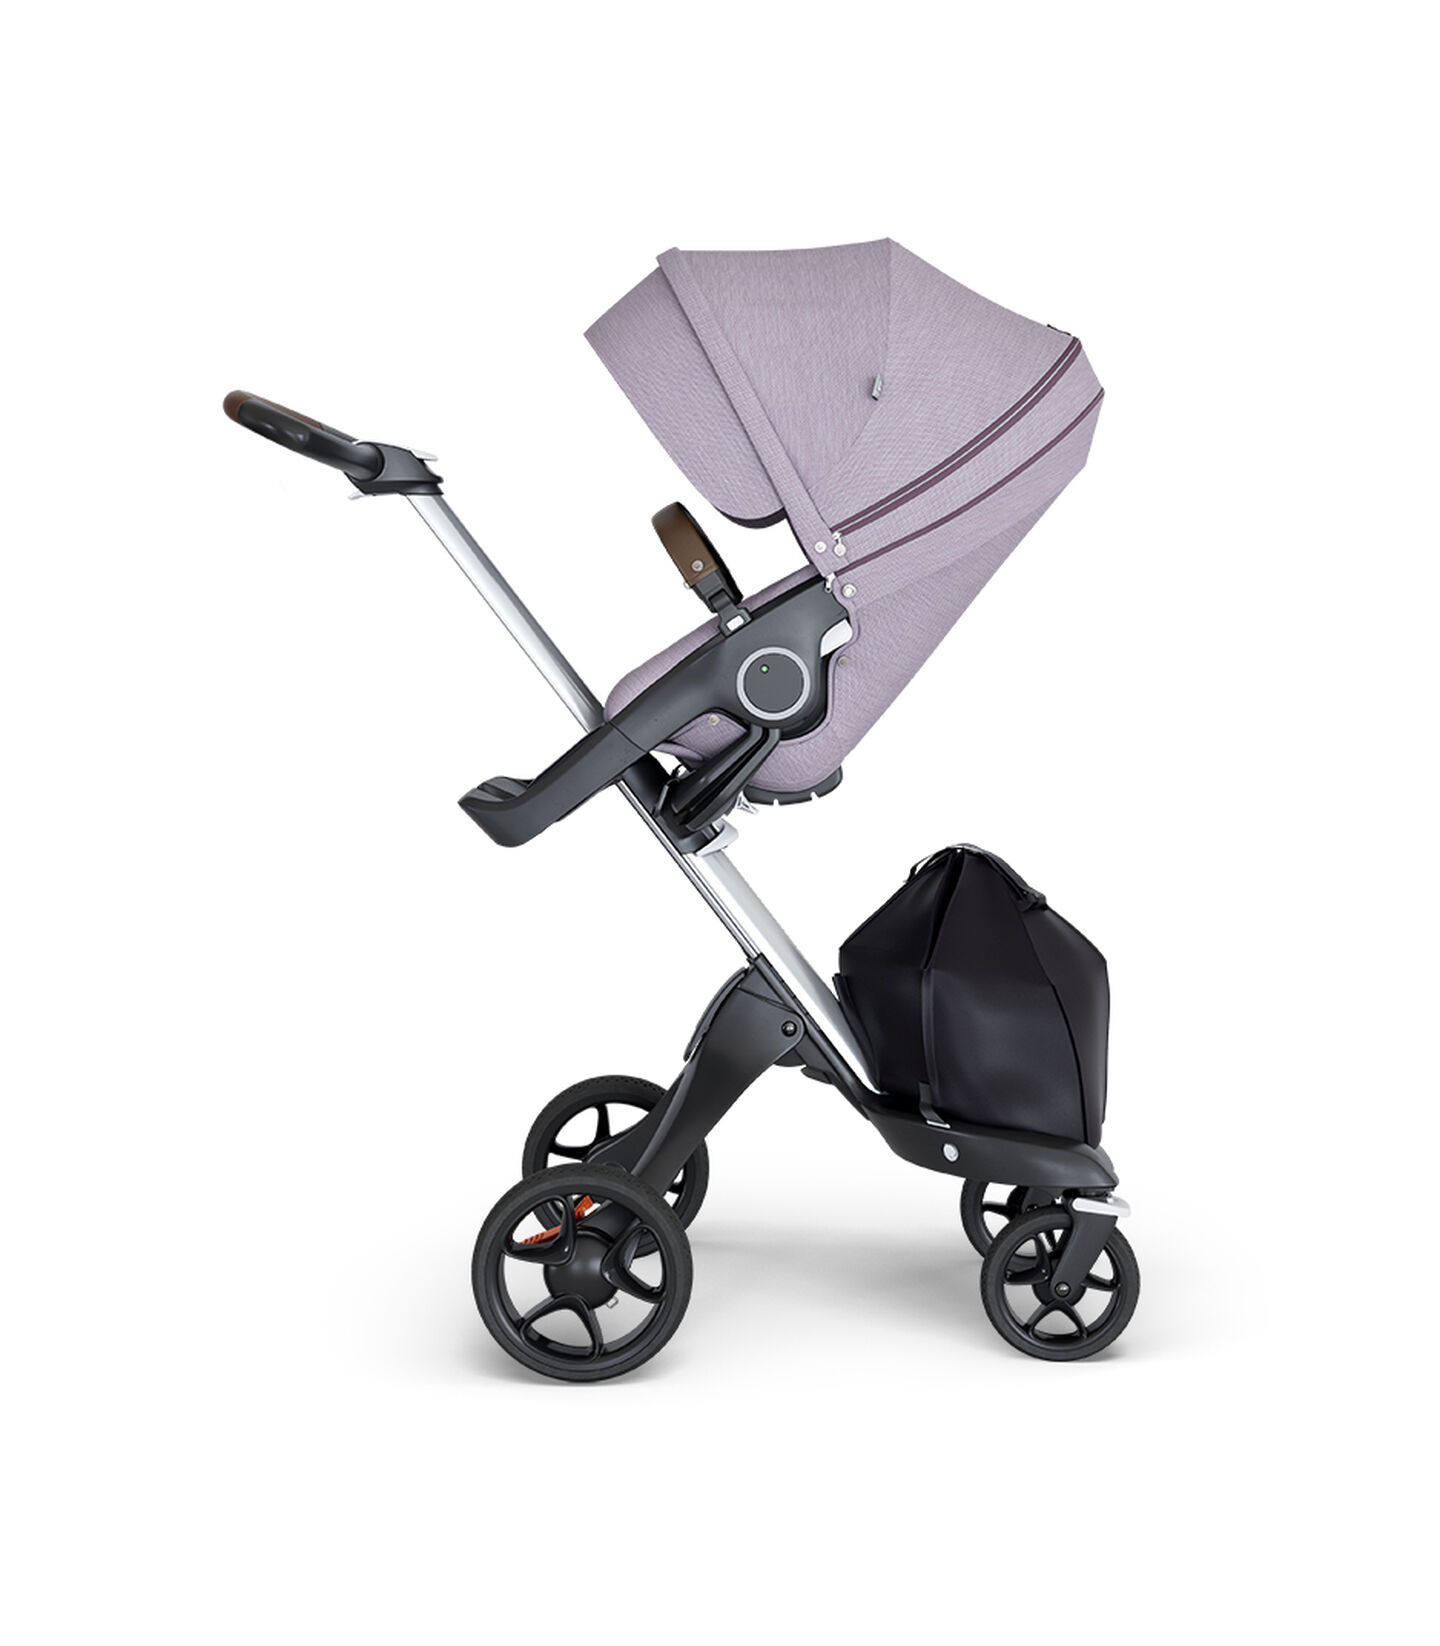 Stokke® Xplory® wtih Silver Chassis and Leatherette Brown handle. Stokke® Stroller Seat Brushed Lilac. view 1